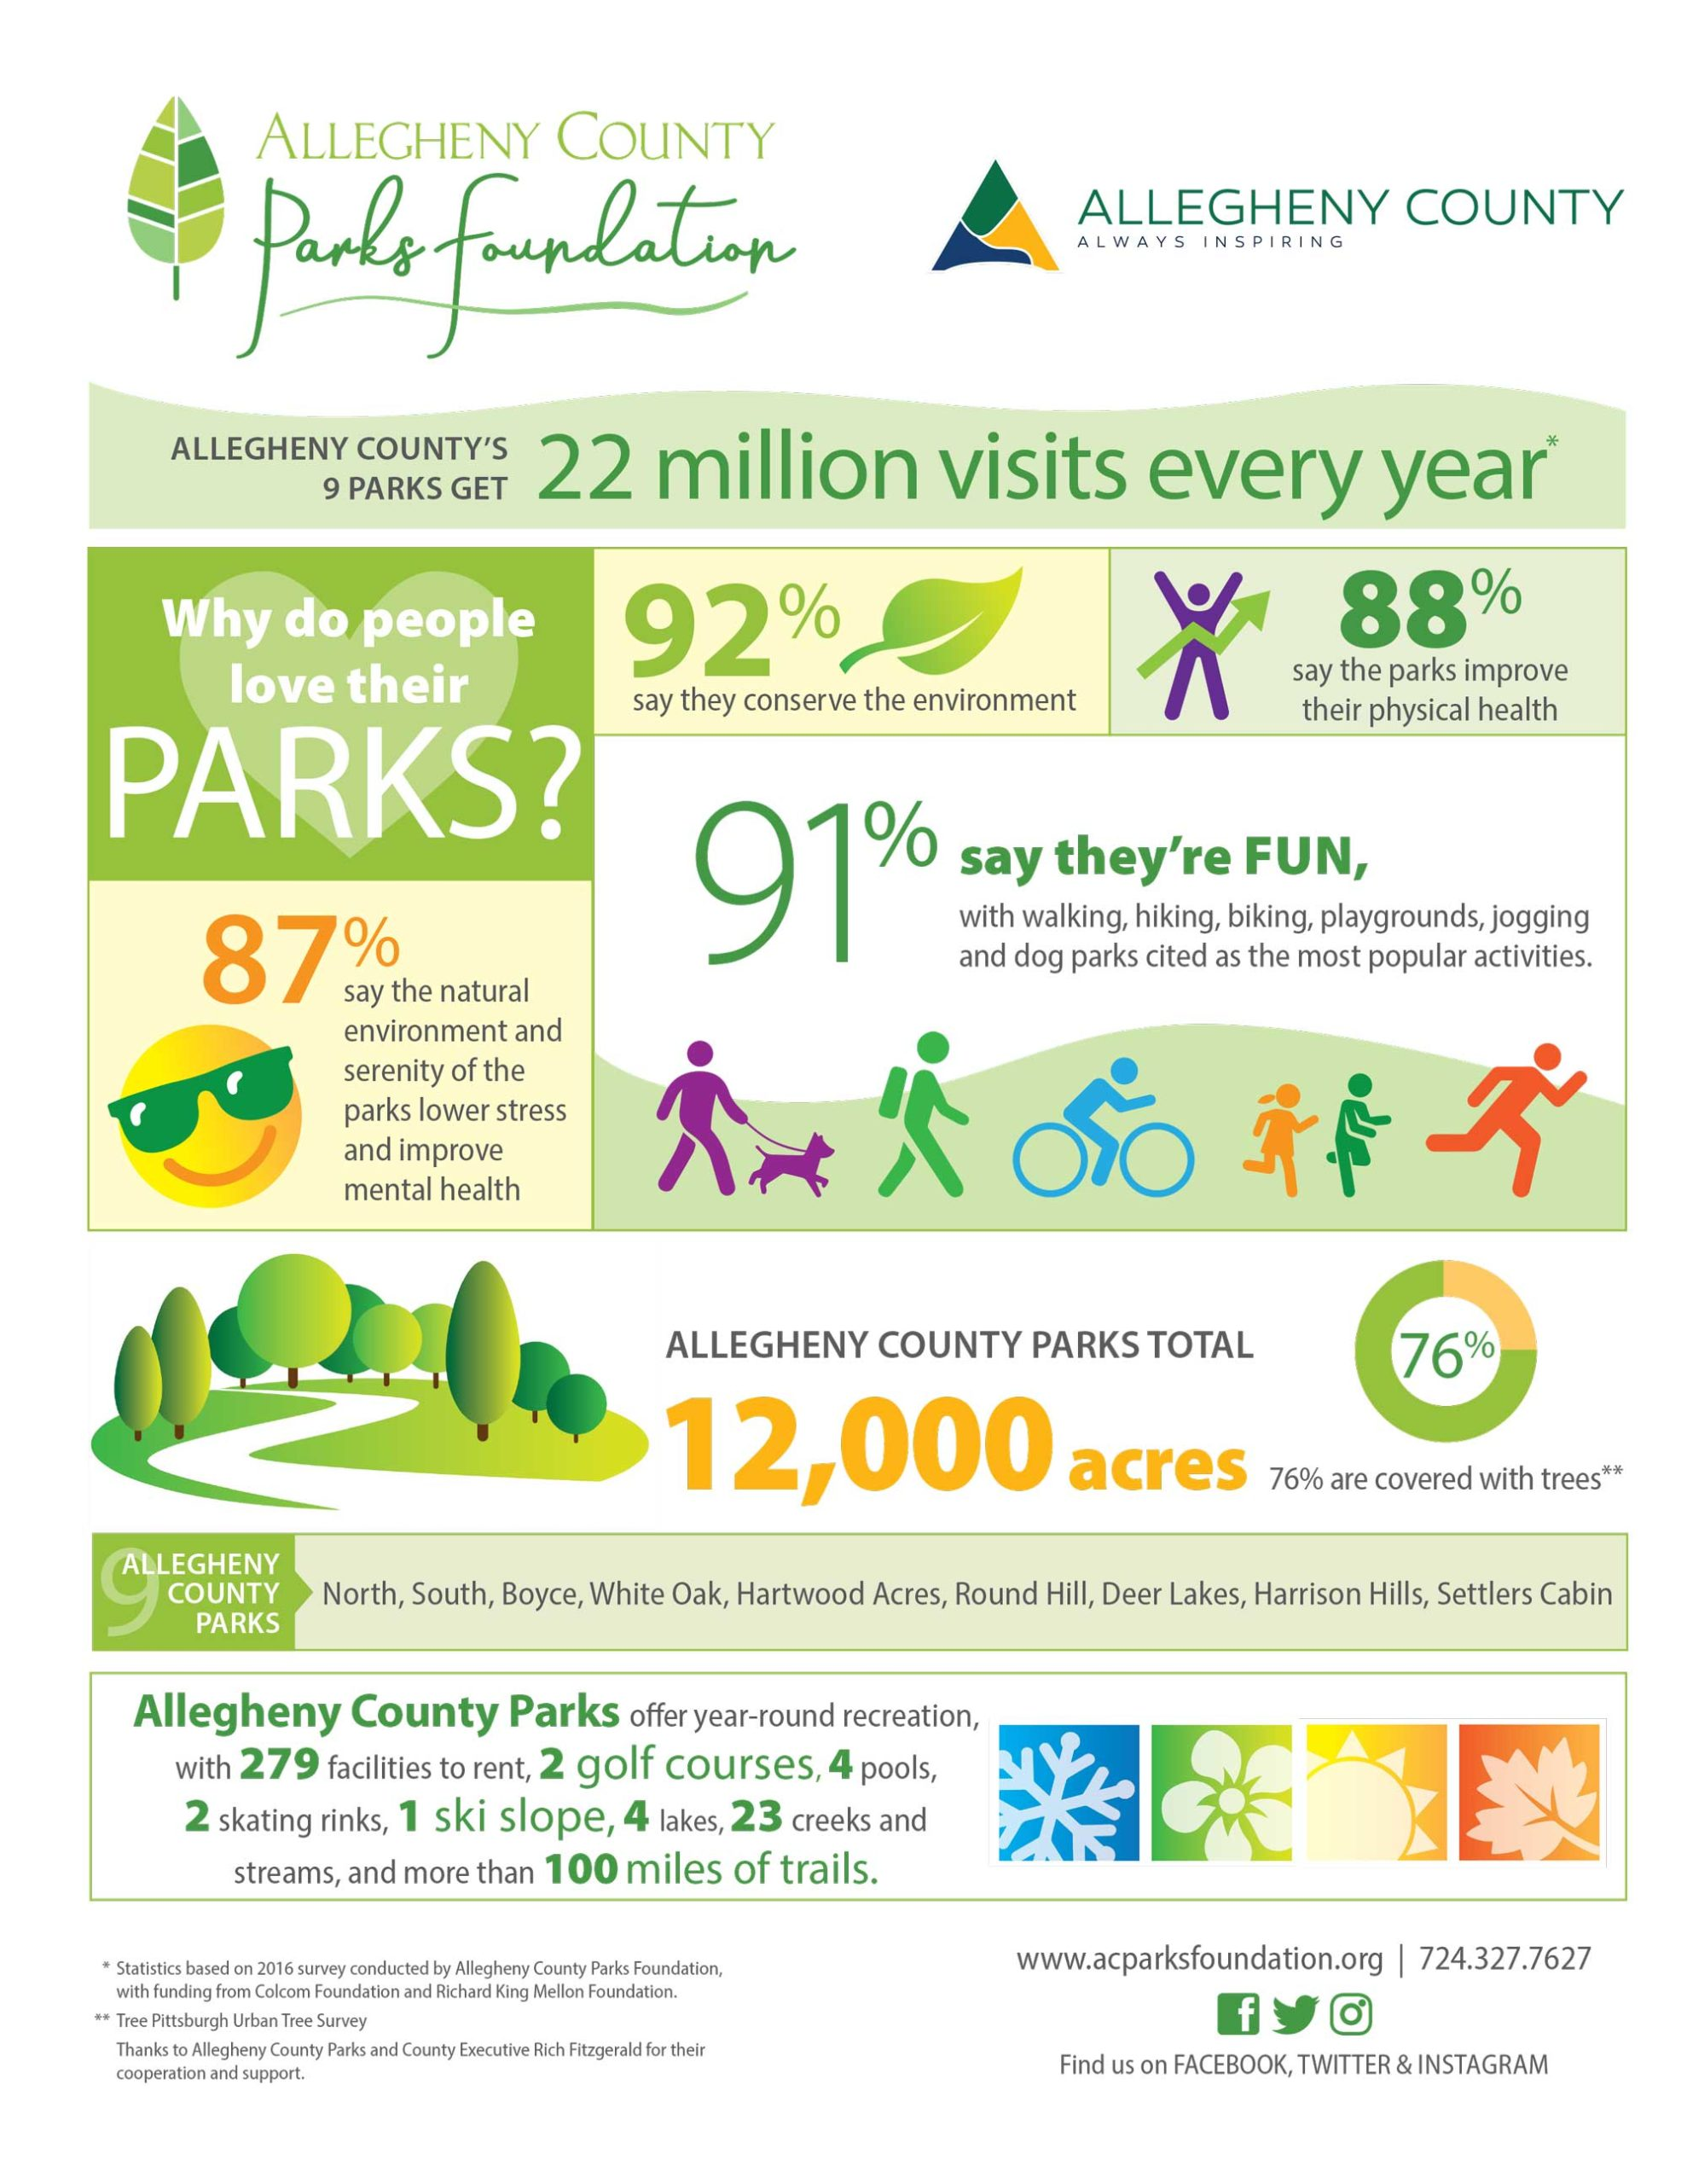 Allegheny County Parks Foundation infographic